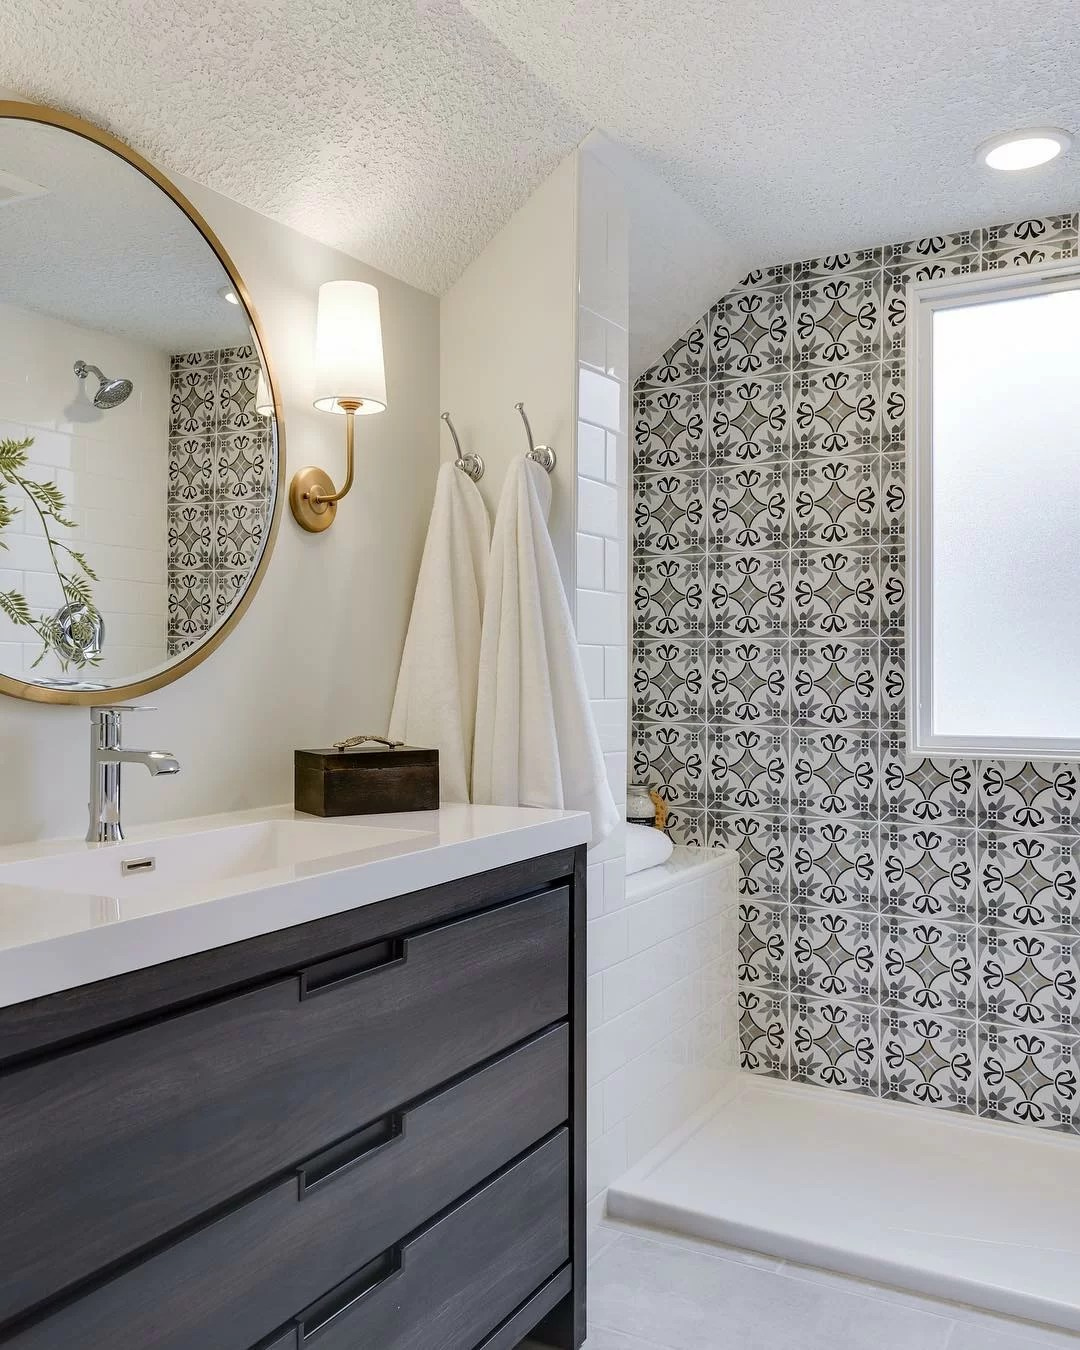 11 Dazzling Shower Tile Ideas For Your Shower Renovation Wayfair